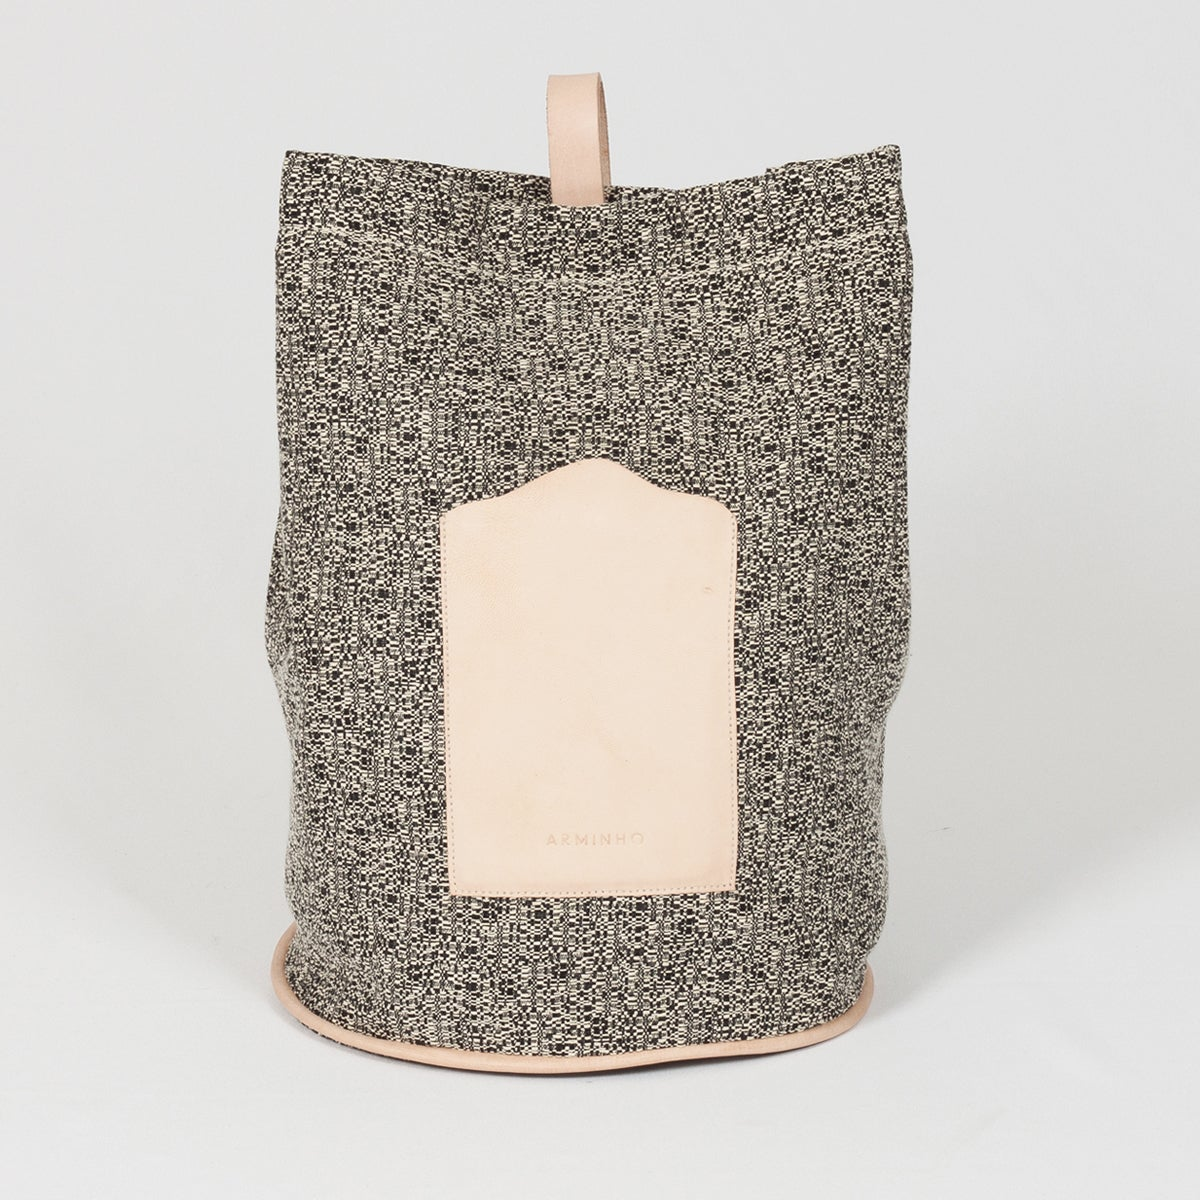 Image of Bucket Bag - black pattern